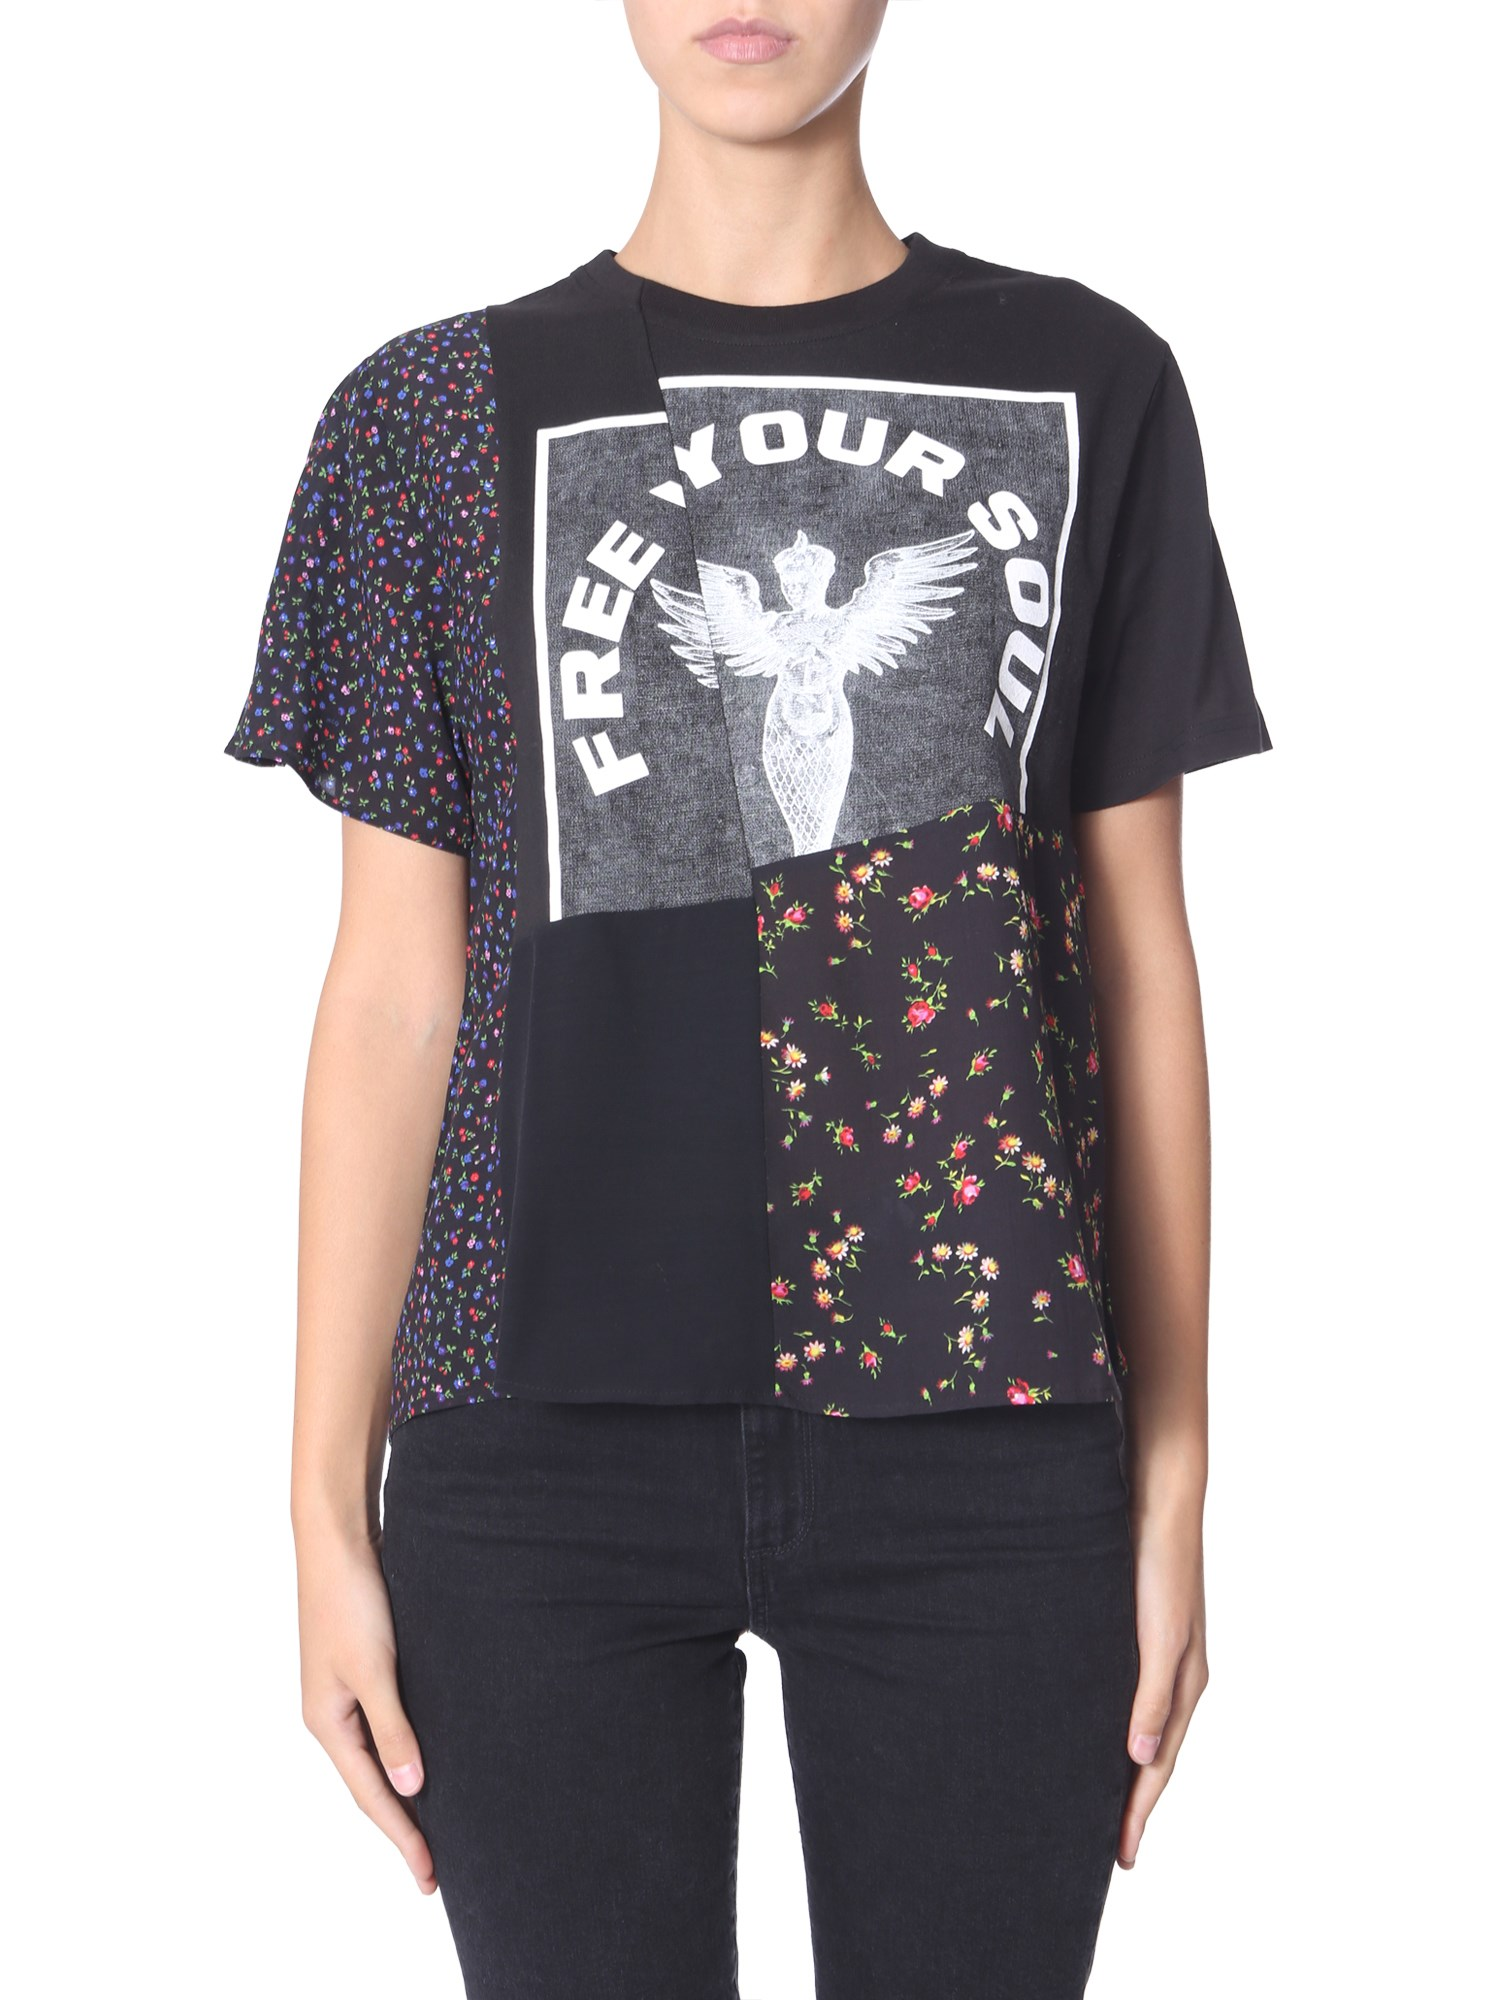 "Mcq By Alexander Mcqueen Tops ""FREE YOUR SOUL"" T-SHIRT"